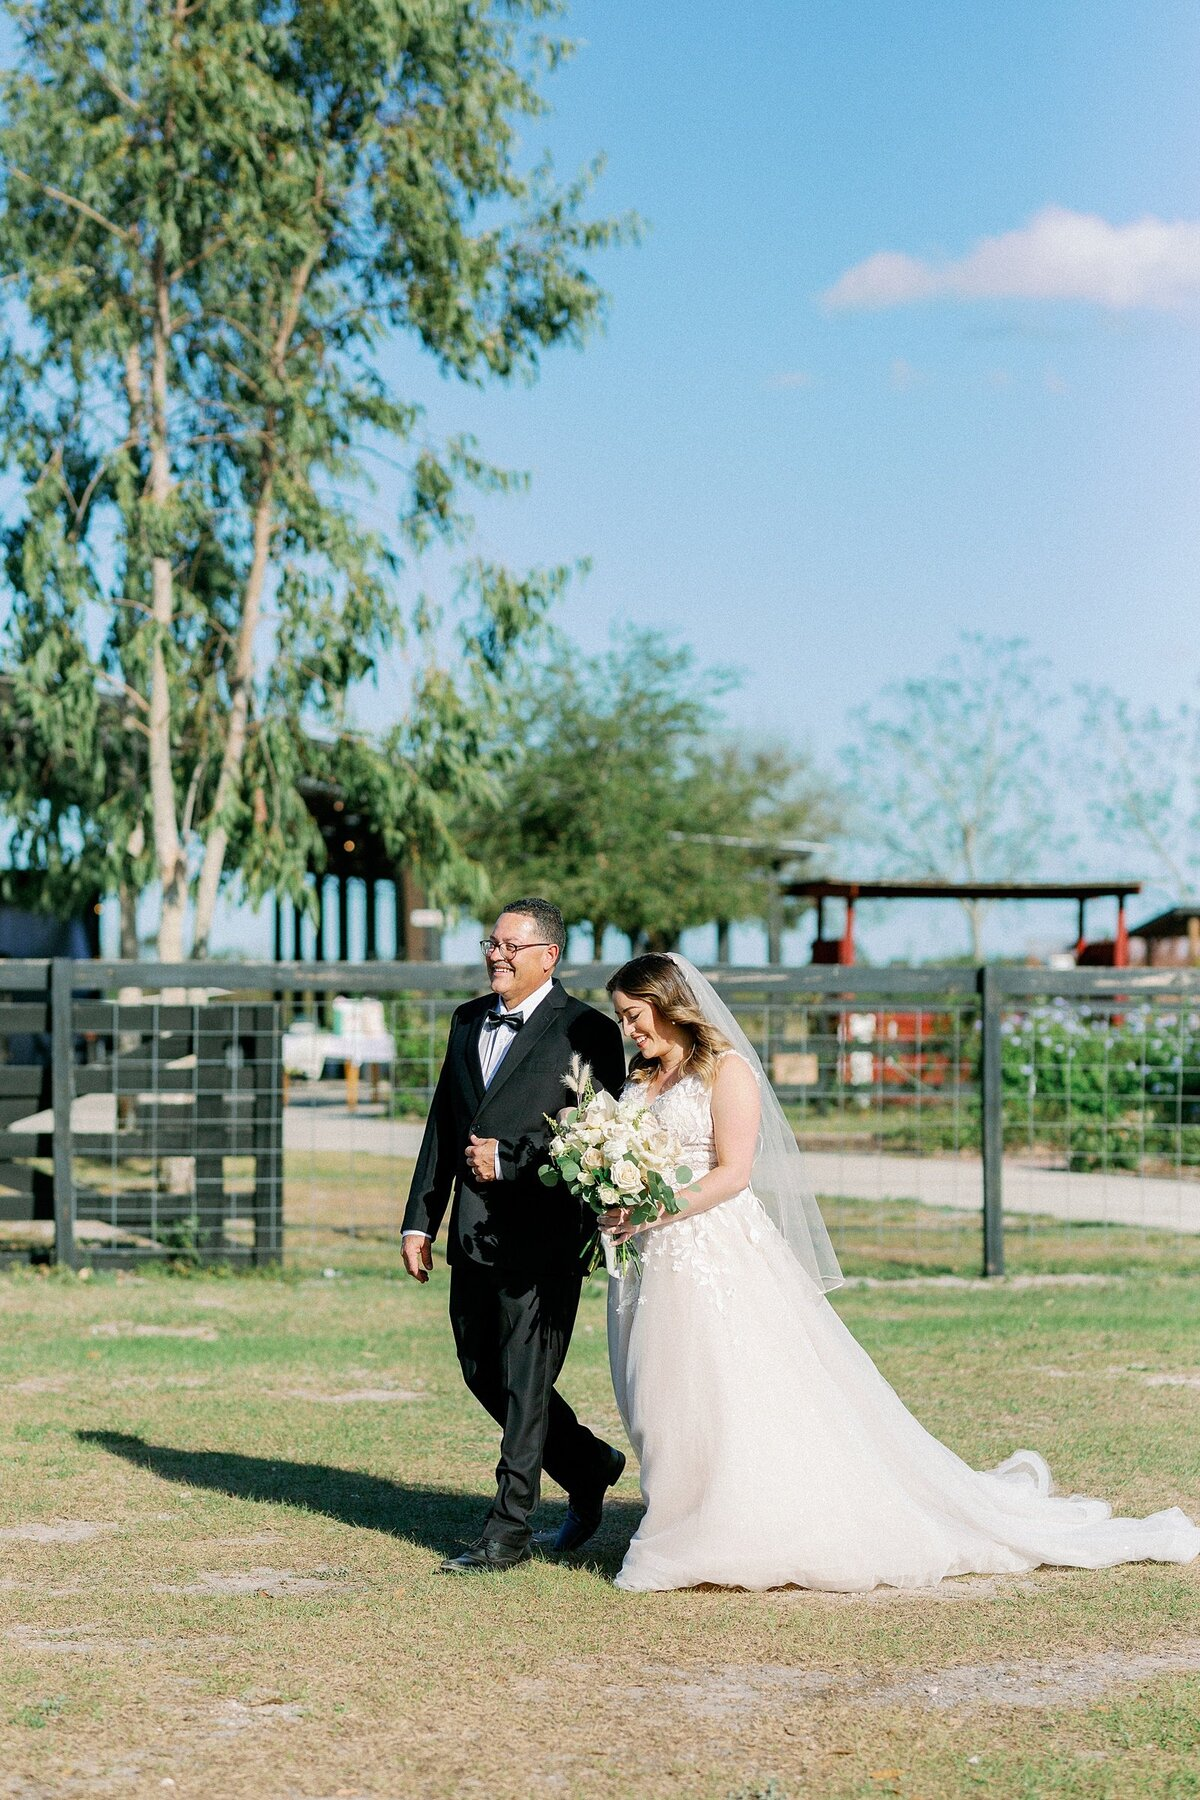 Jorge + Raiza Cruz Wedding Hasting Ranch St. Cloud Florida Photographer Casie Marie Photography Sneak peek-59